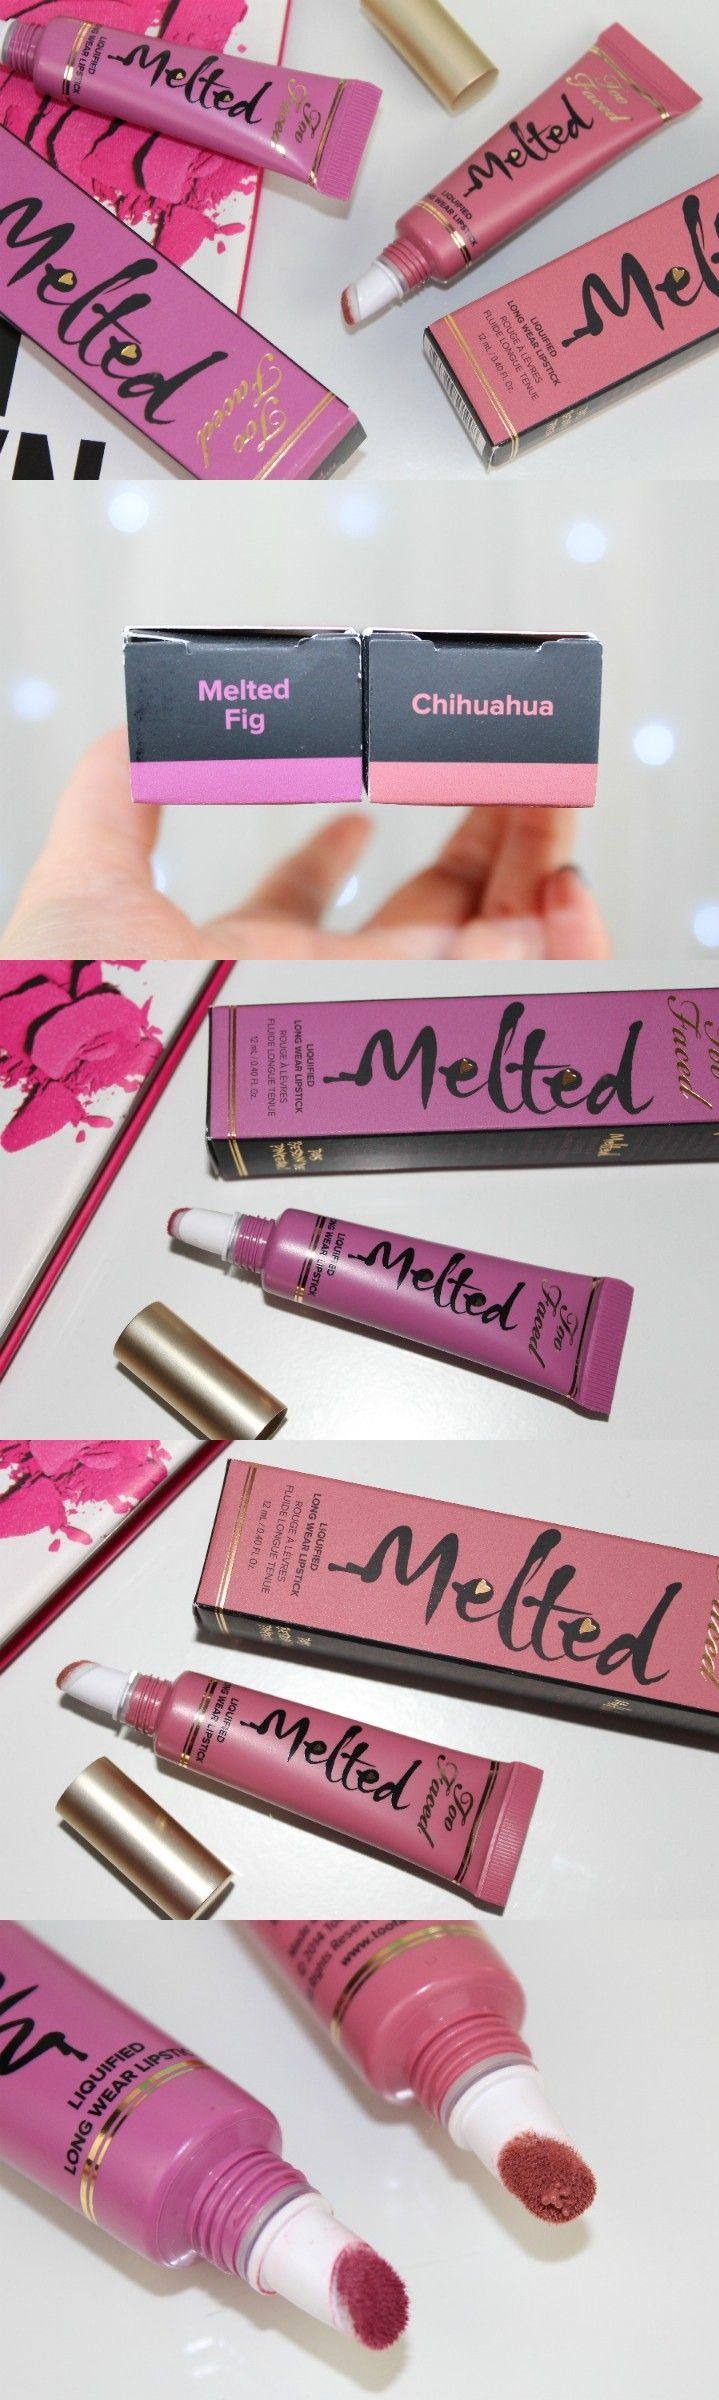 Too Faced Melted Liquified Long Wear Lipsticks in Melted Fig and Chihuahua - http://pinkparadisebeauty.blogspot.co.uk/2015/11/too-faced-melted-liquified-long-wear.html